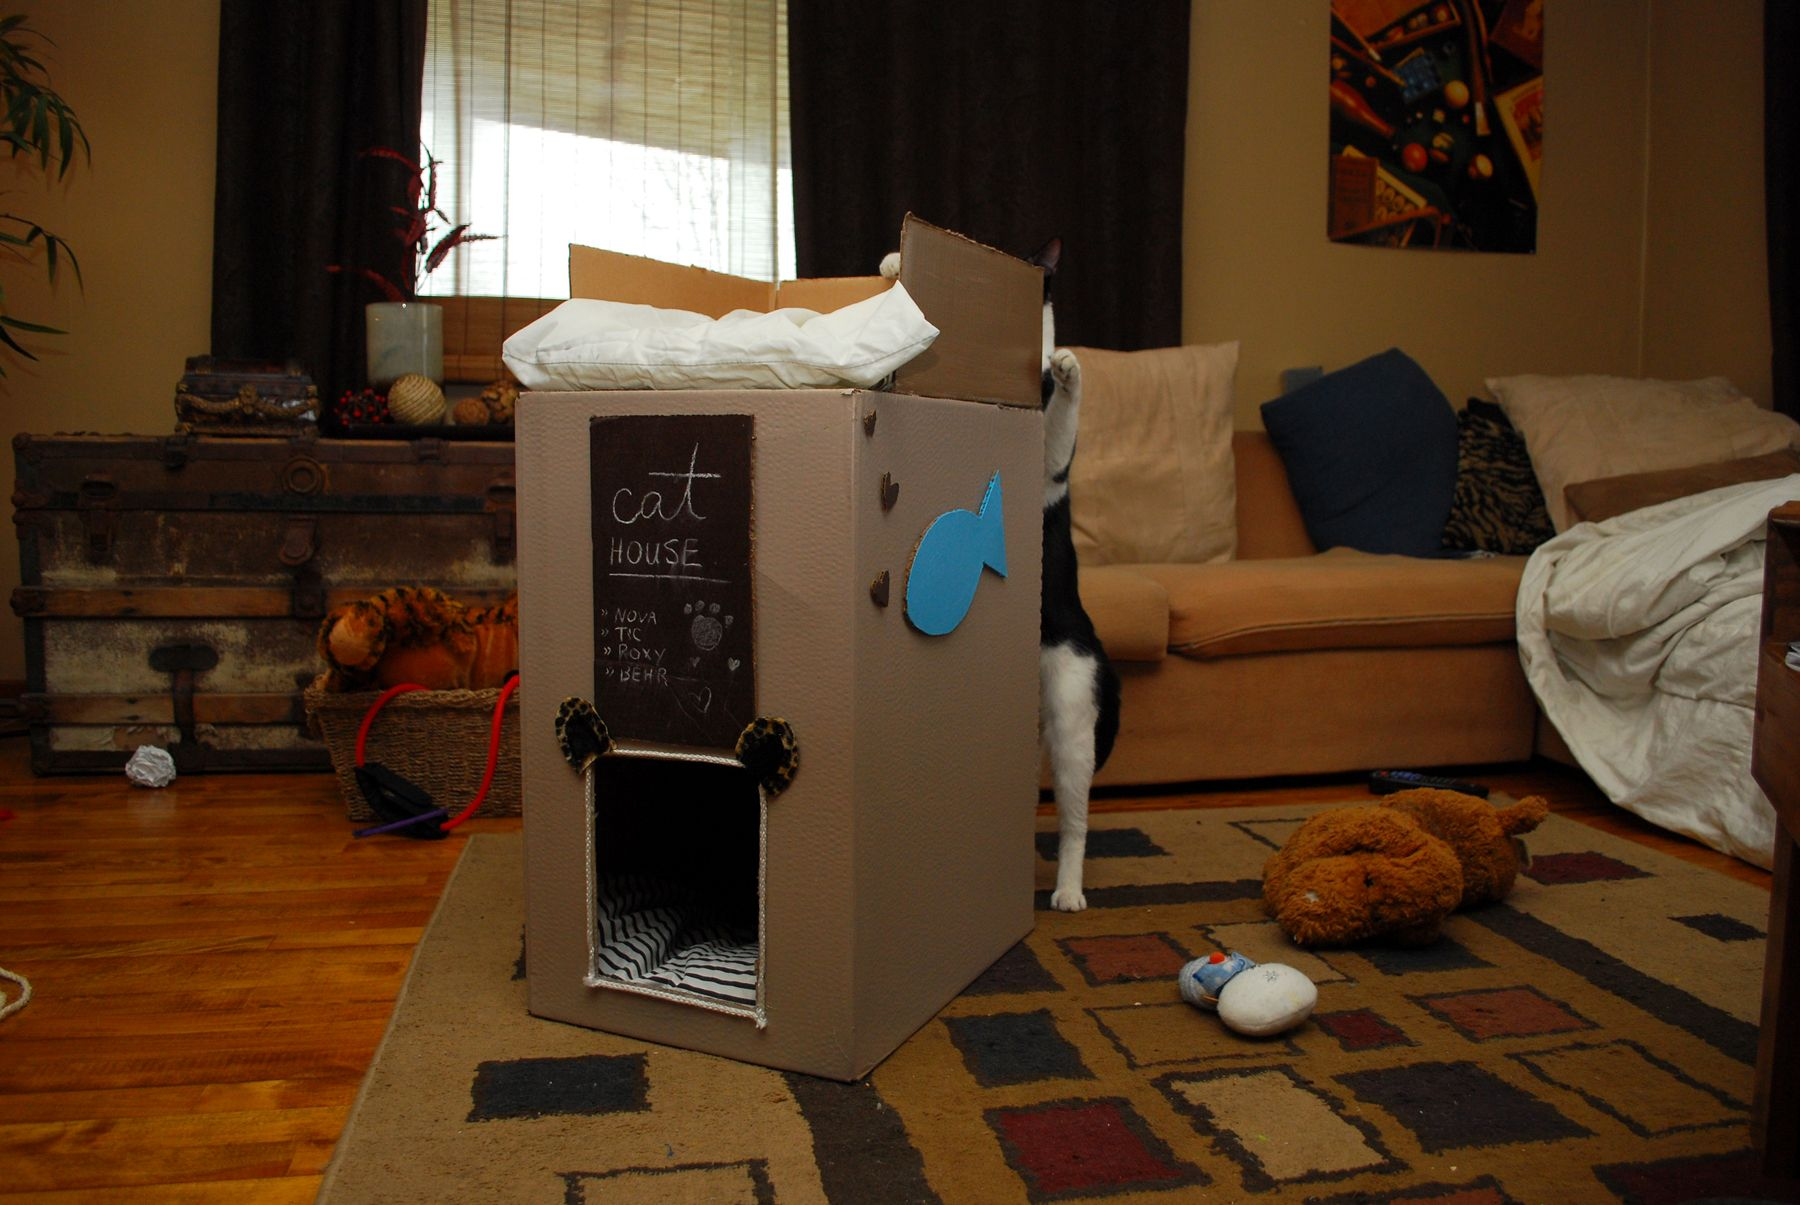 Cat house made from a cardboard box diy cat tree